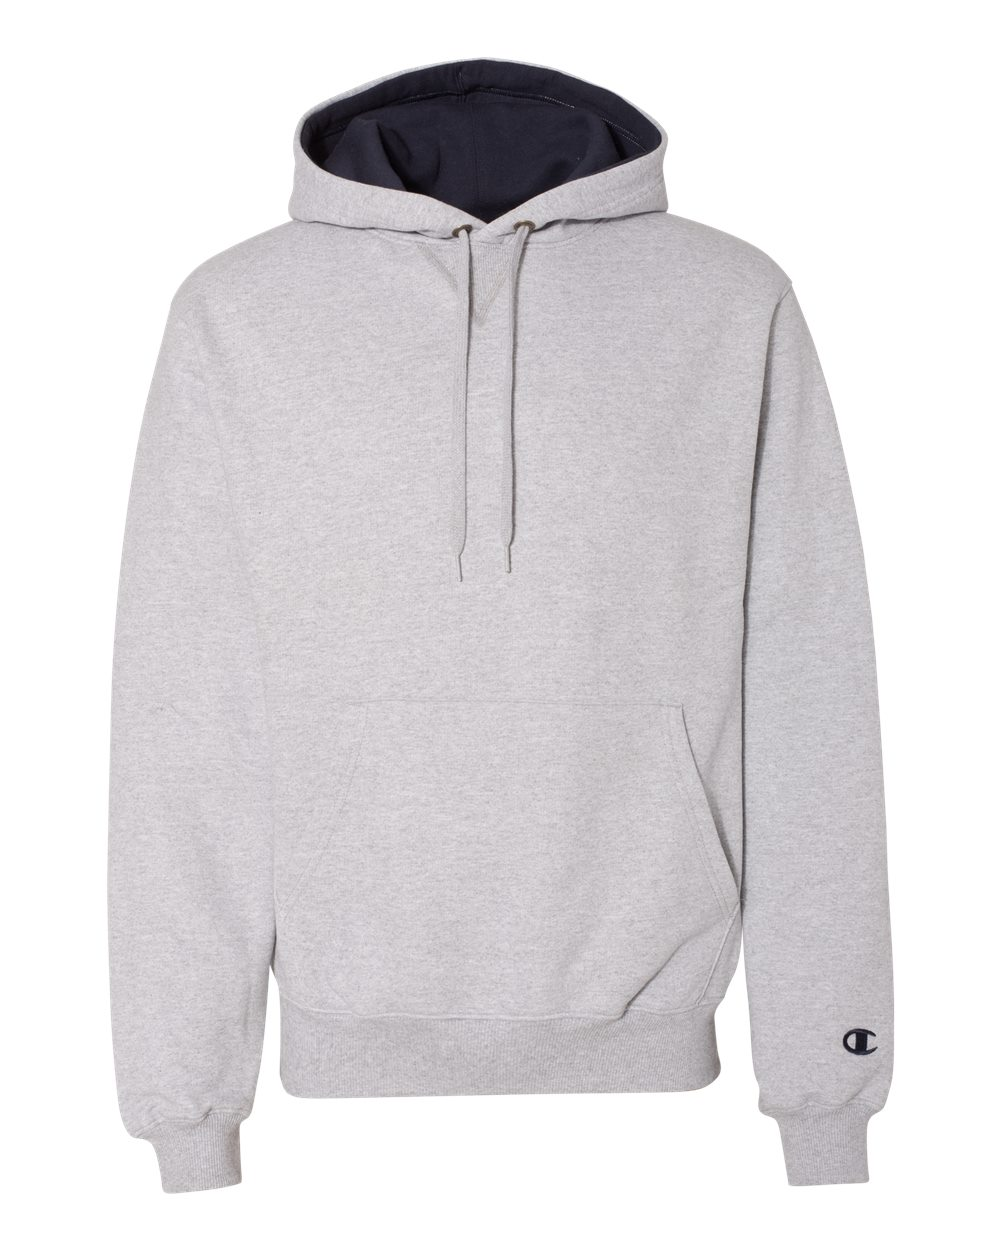 Champion S171 - Cotton Max Hooded Sweatshirt